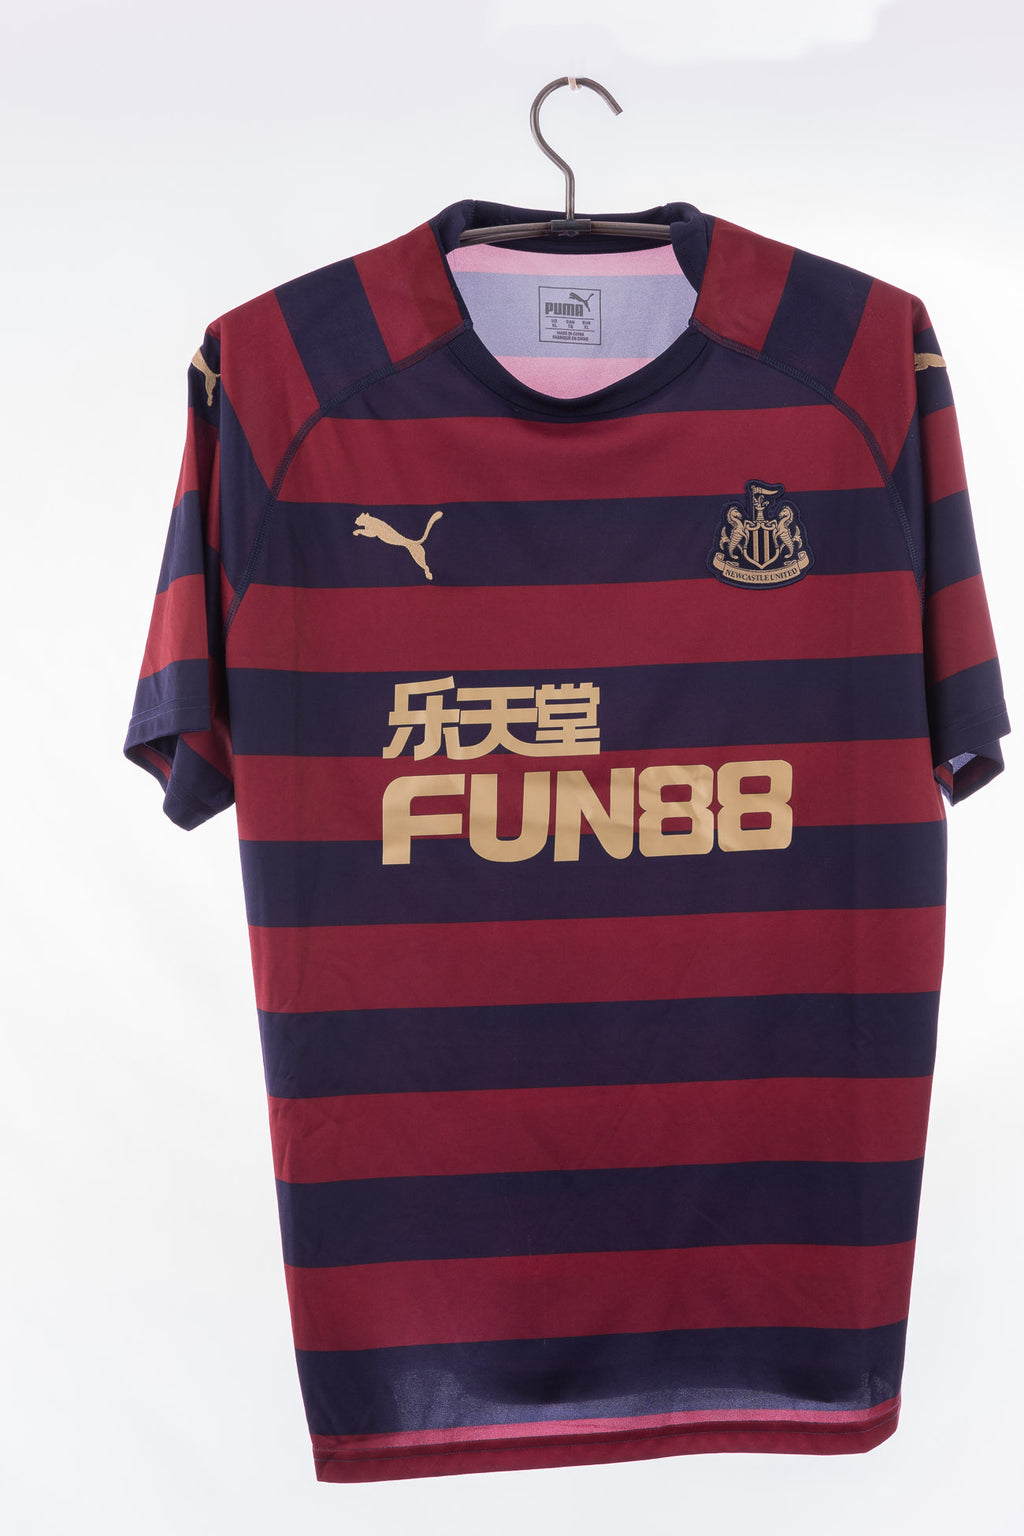 Newcastle United 2018 - 2019 Puma Away Football Shirt